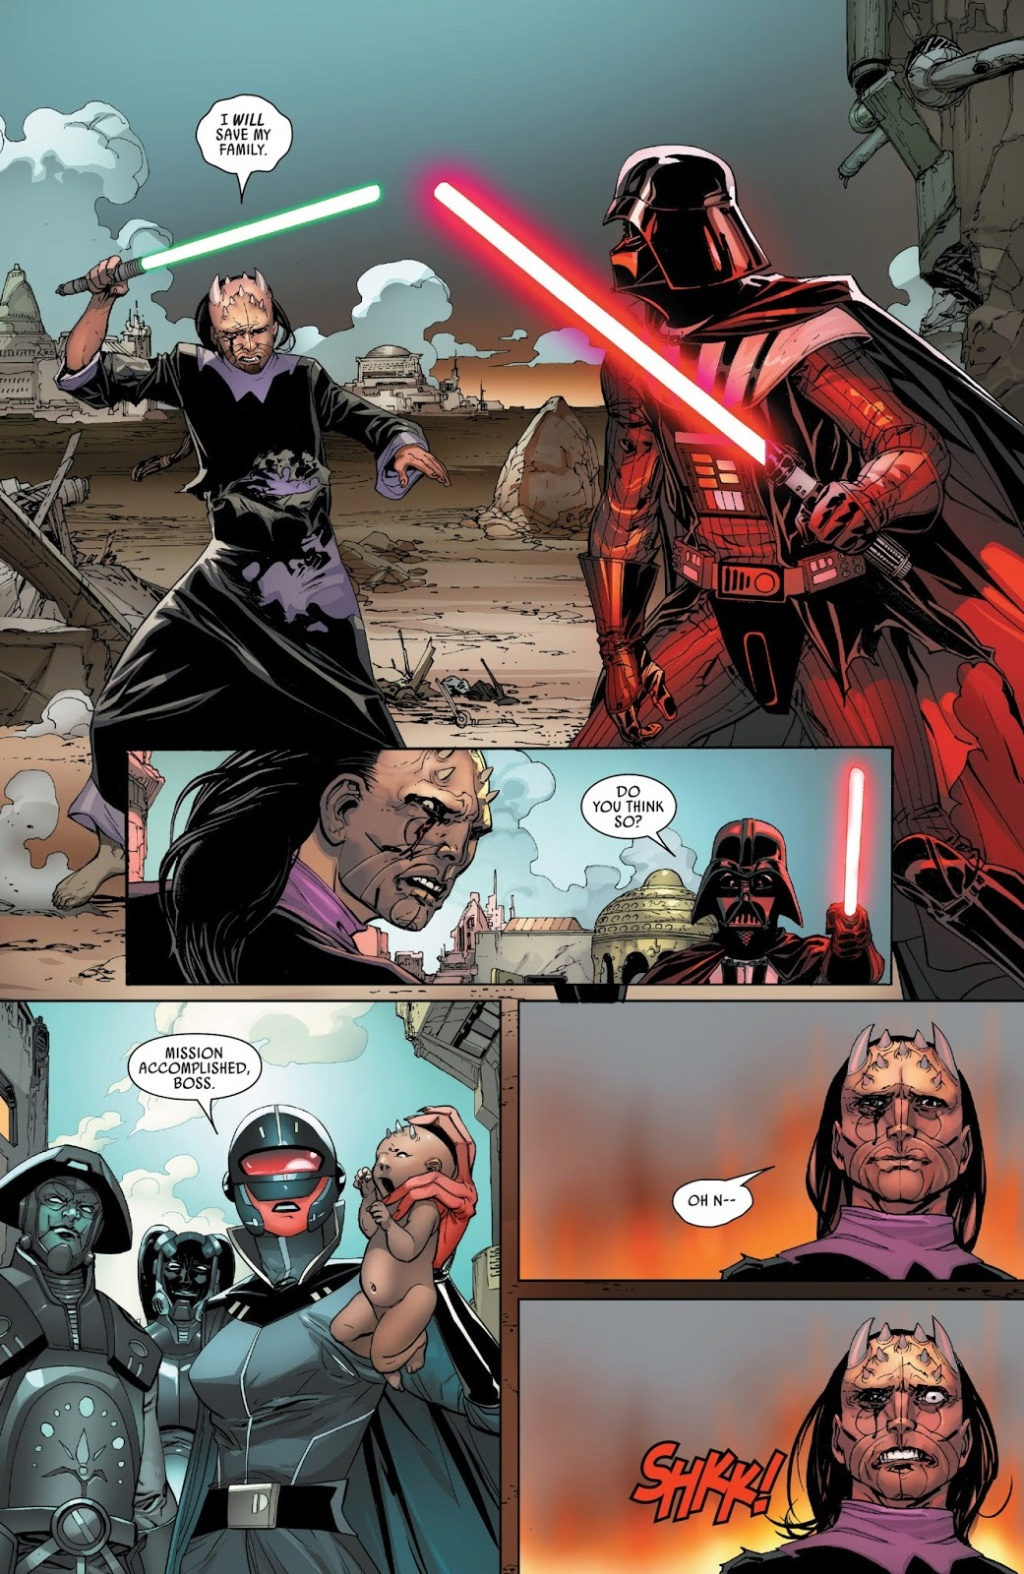 Darth Sidious (without lightsaber) vs Darth Vader - Page 3 Darth-18